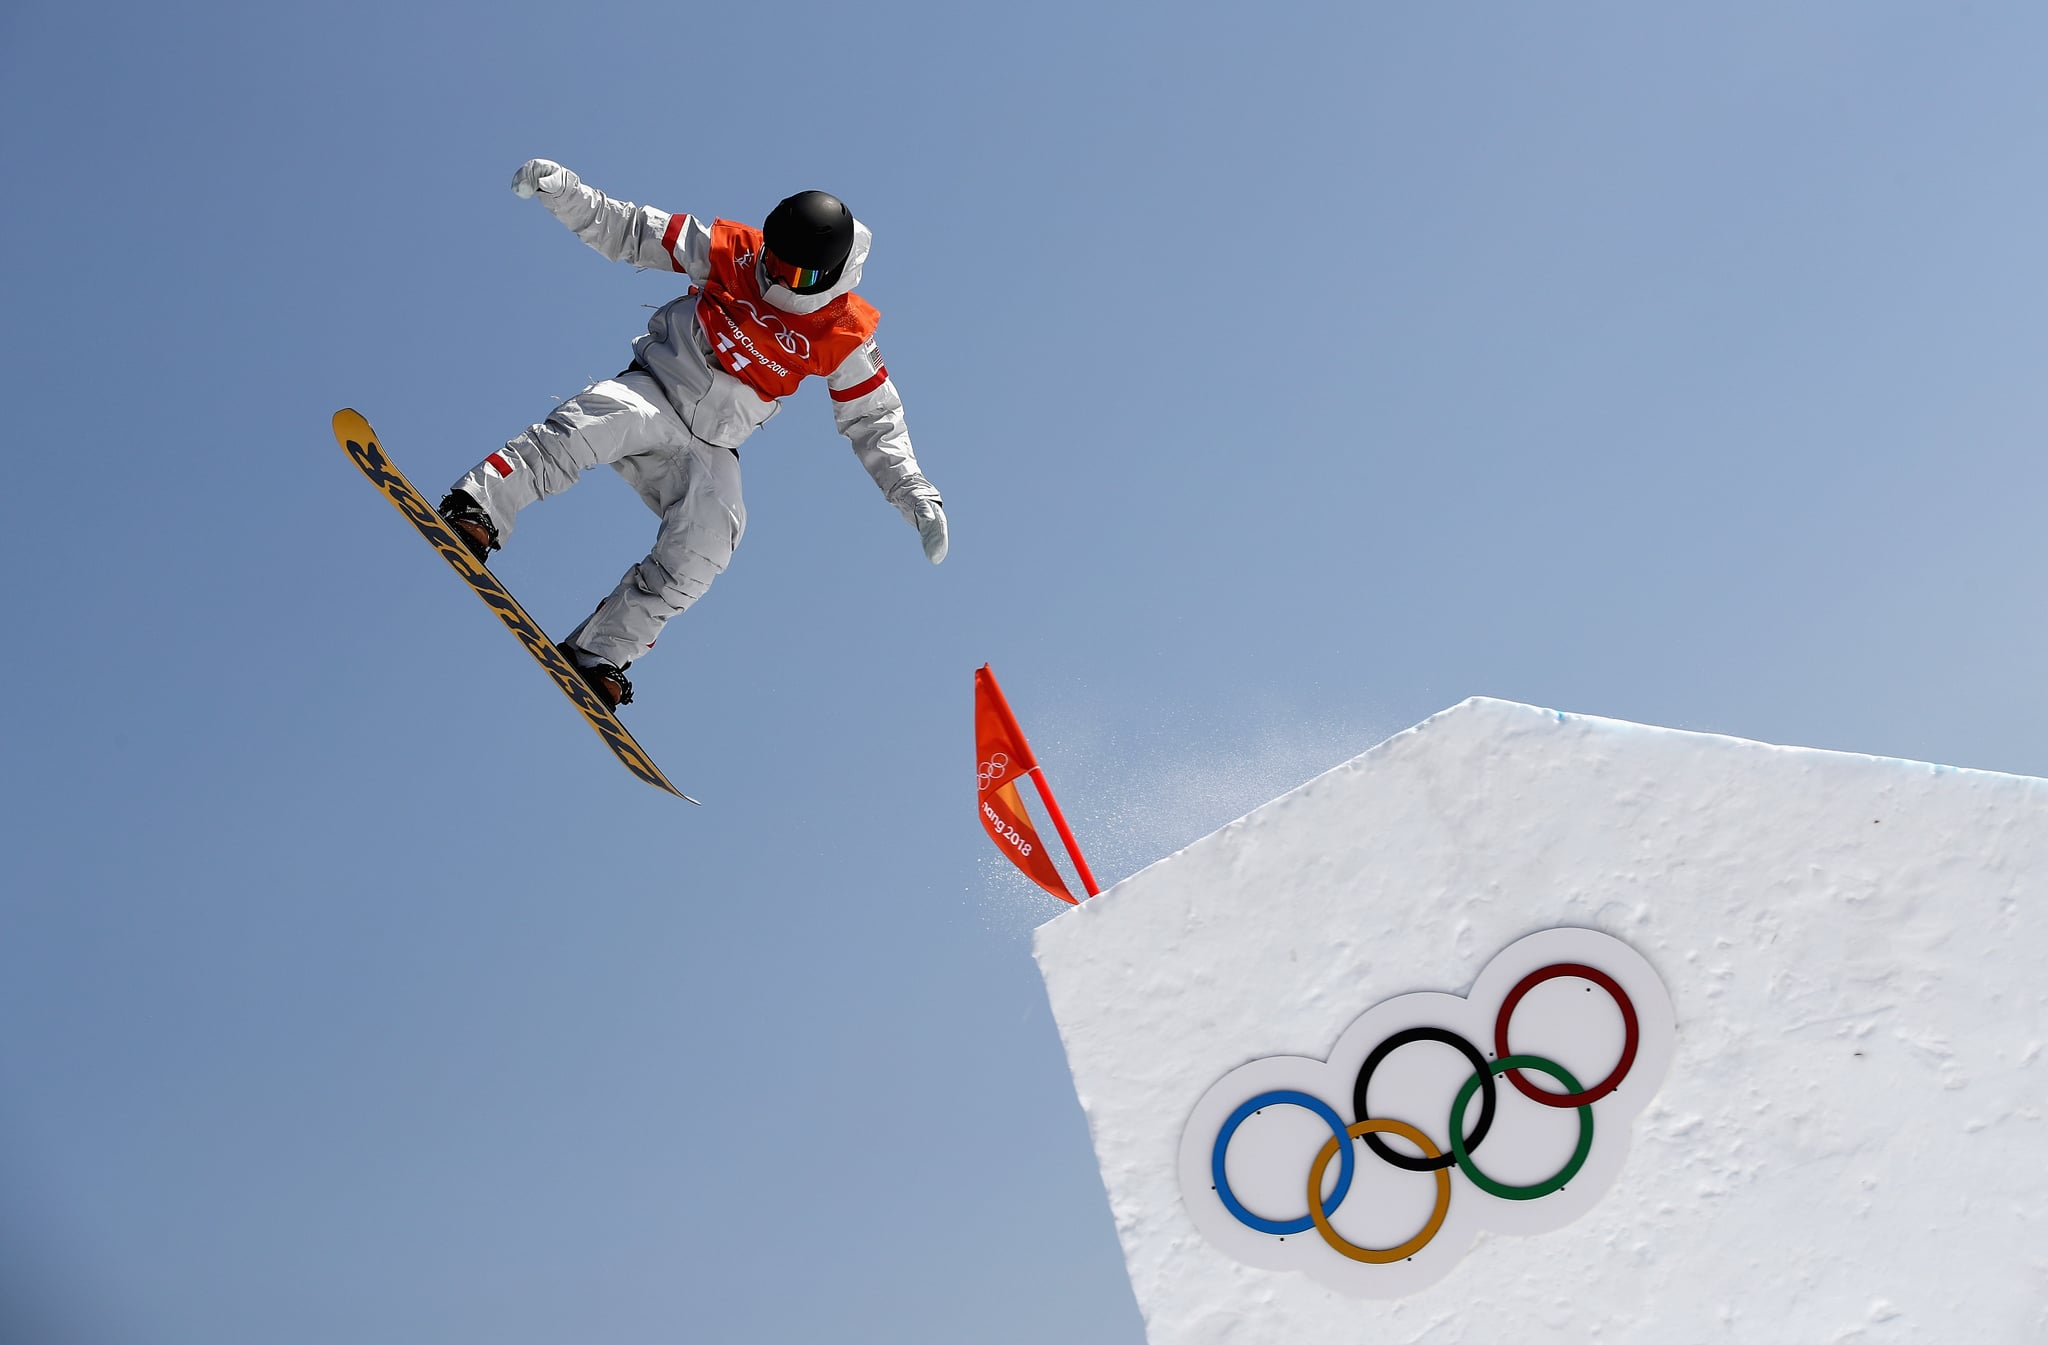 Olympics: Canada's Toutant grabs big air gold at Pyeongchang Games